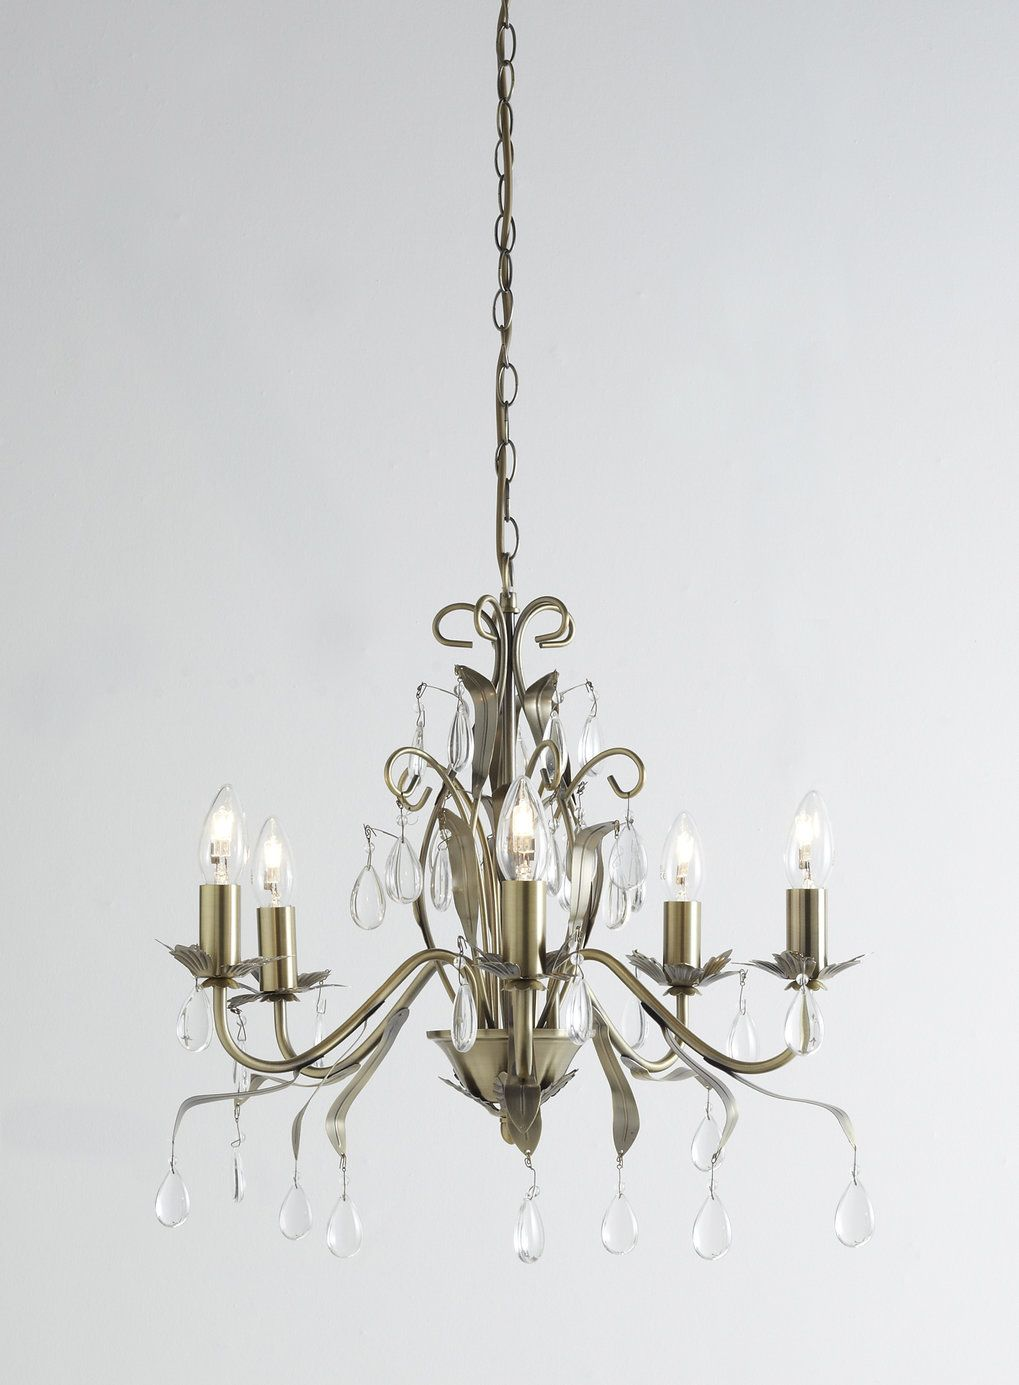 Bathroom Chandeliers Bhs leaf and pear drop 5 light chandelier - ceiling lights - home